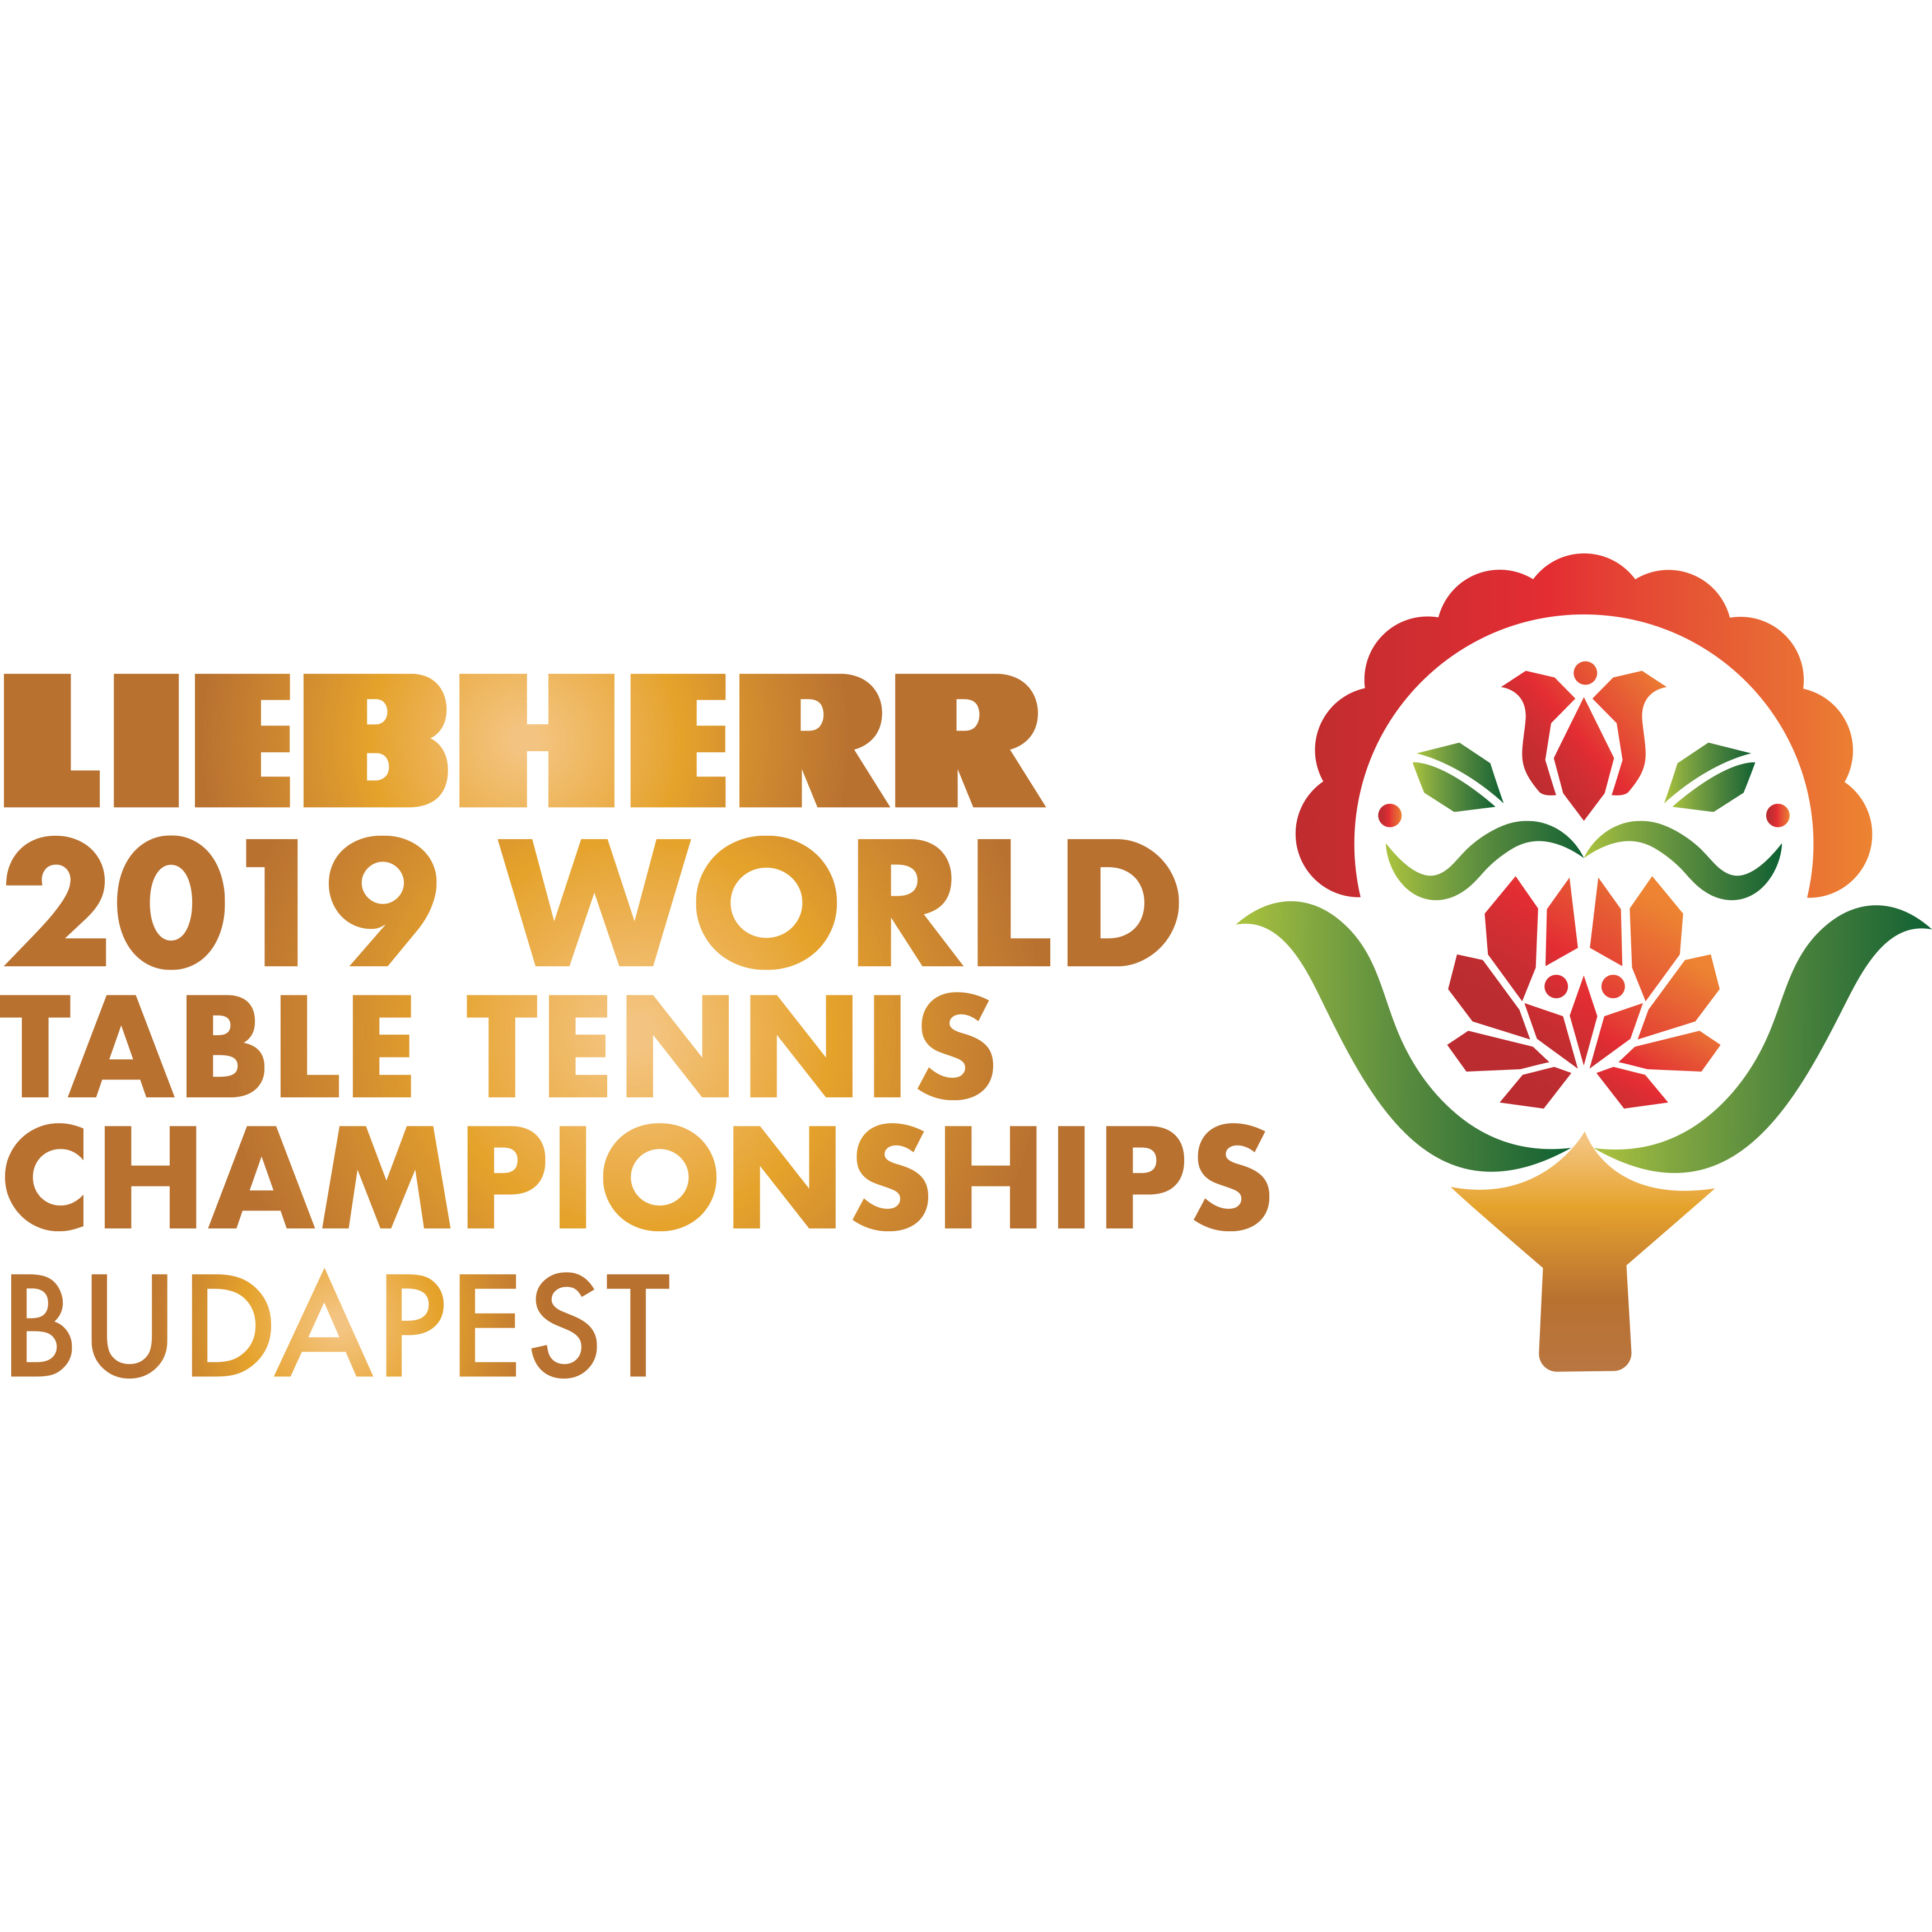 2019 World Table Tennis Championships - Individual